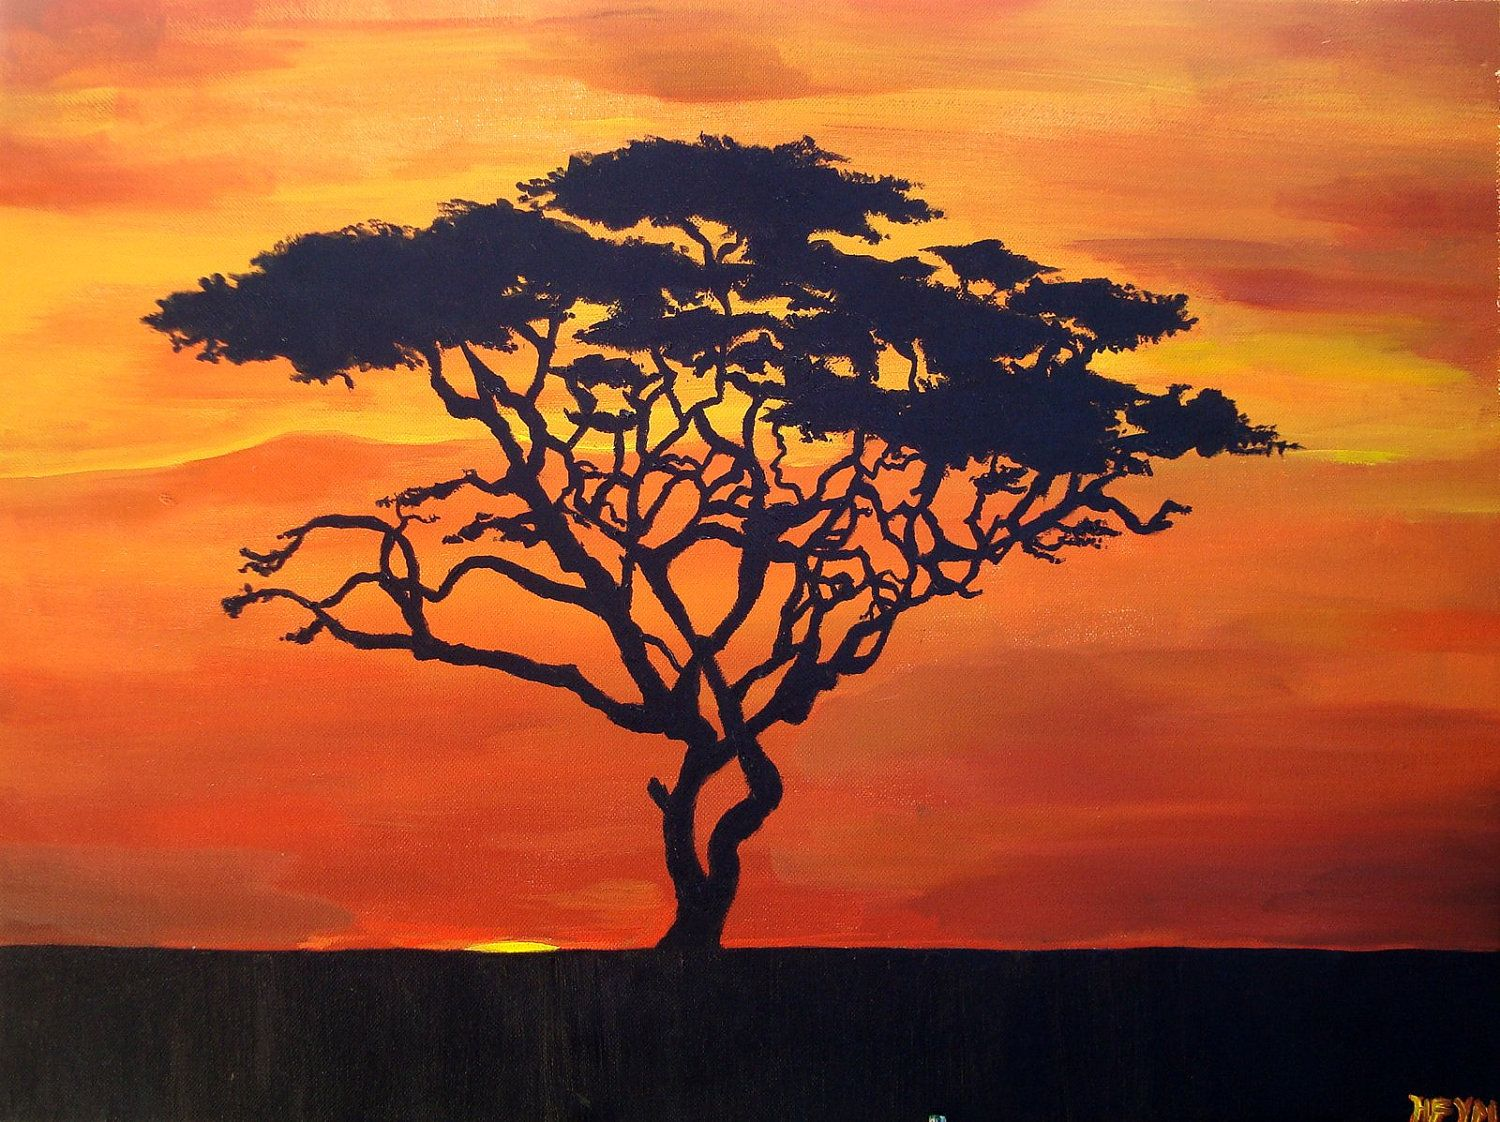 Acacia Trees Were Some Of The Best Quot Cell Phone Trees Quot That The Kenyans - Acacia tree silhouette african sunset landscape painting 18 x 24 85 00 via